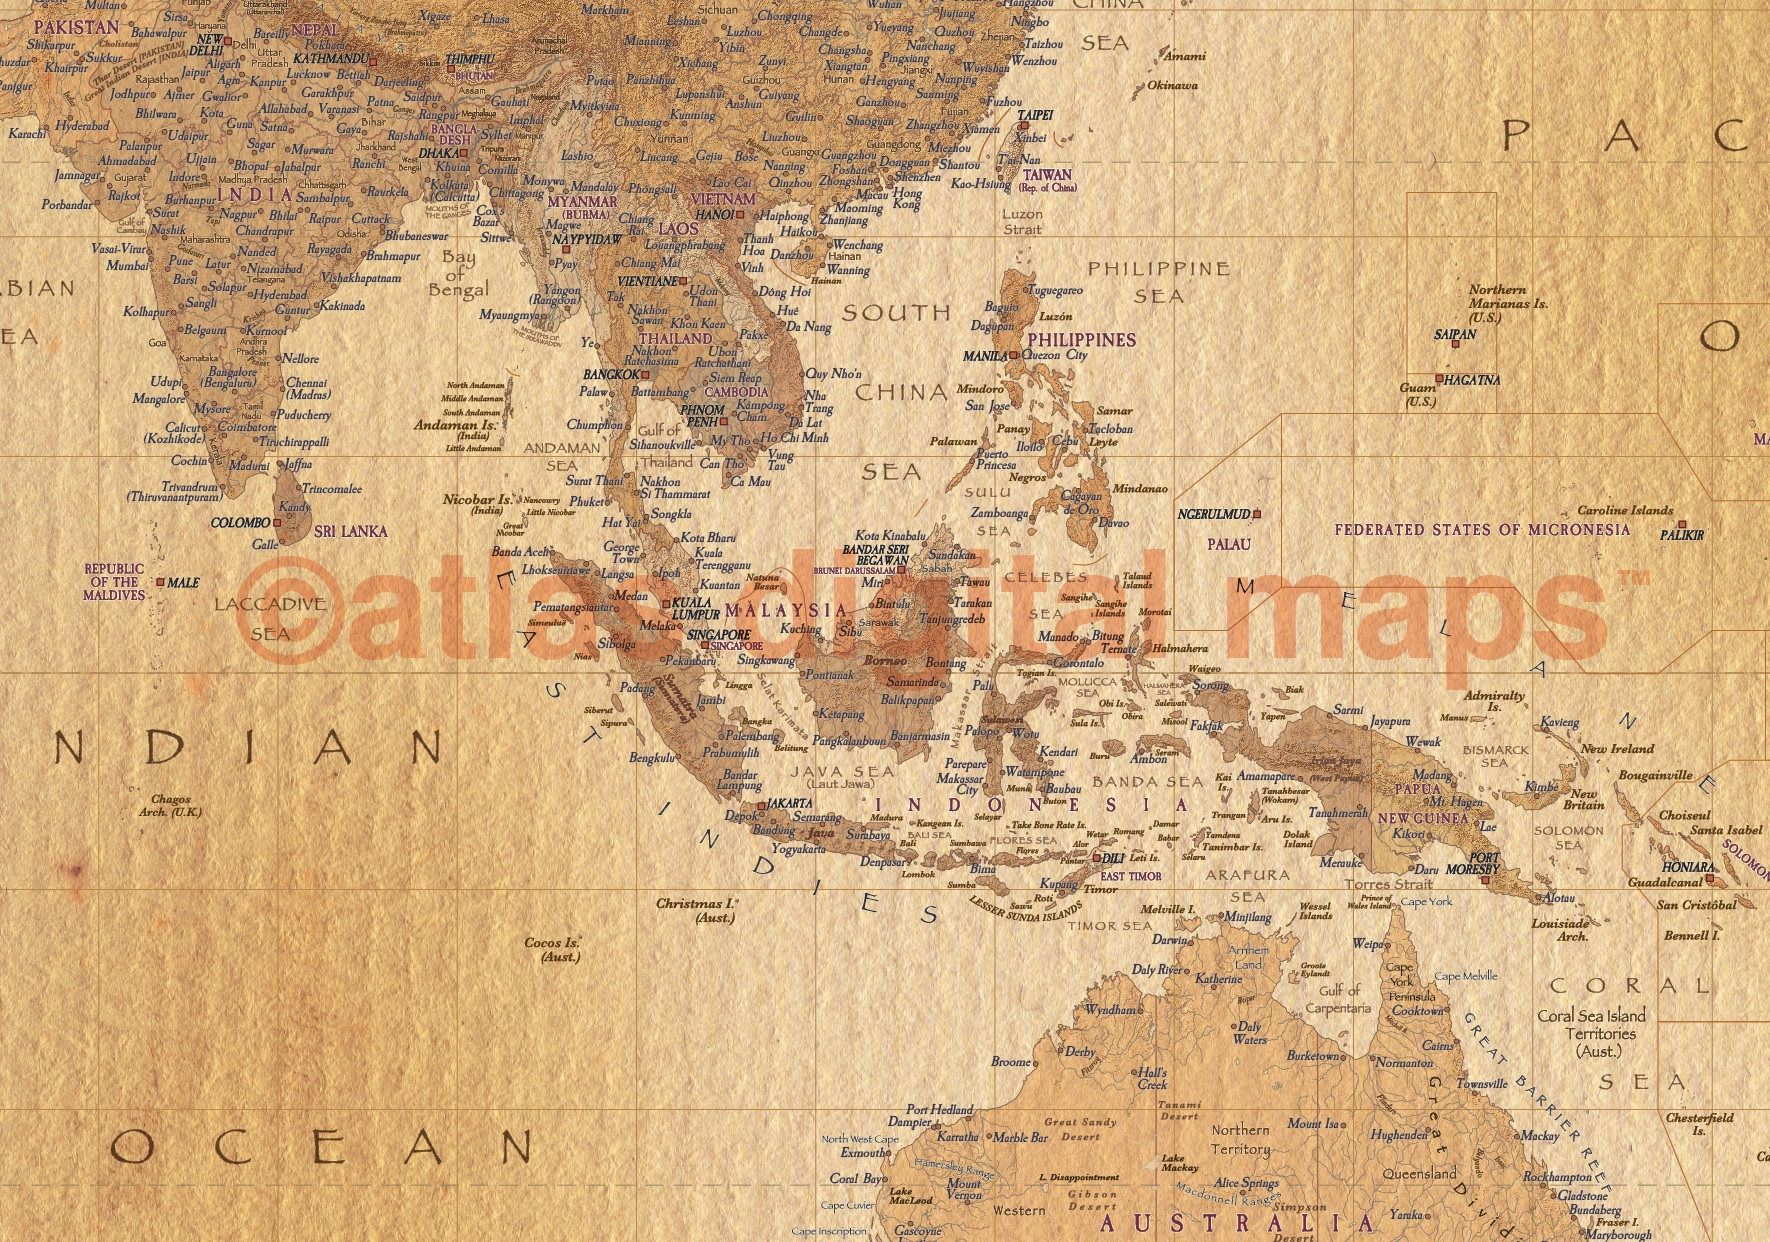 World map canvas map of the world world map print physical sale world map canvas map of the world world map print physical political world map golden tan rolledlarge gumiabroncs Gallery